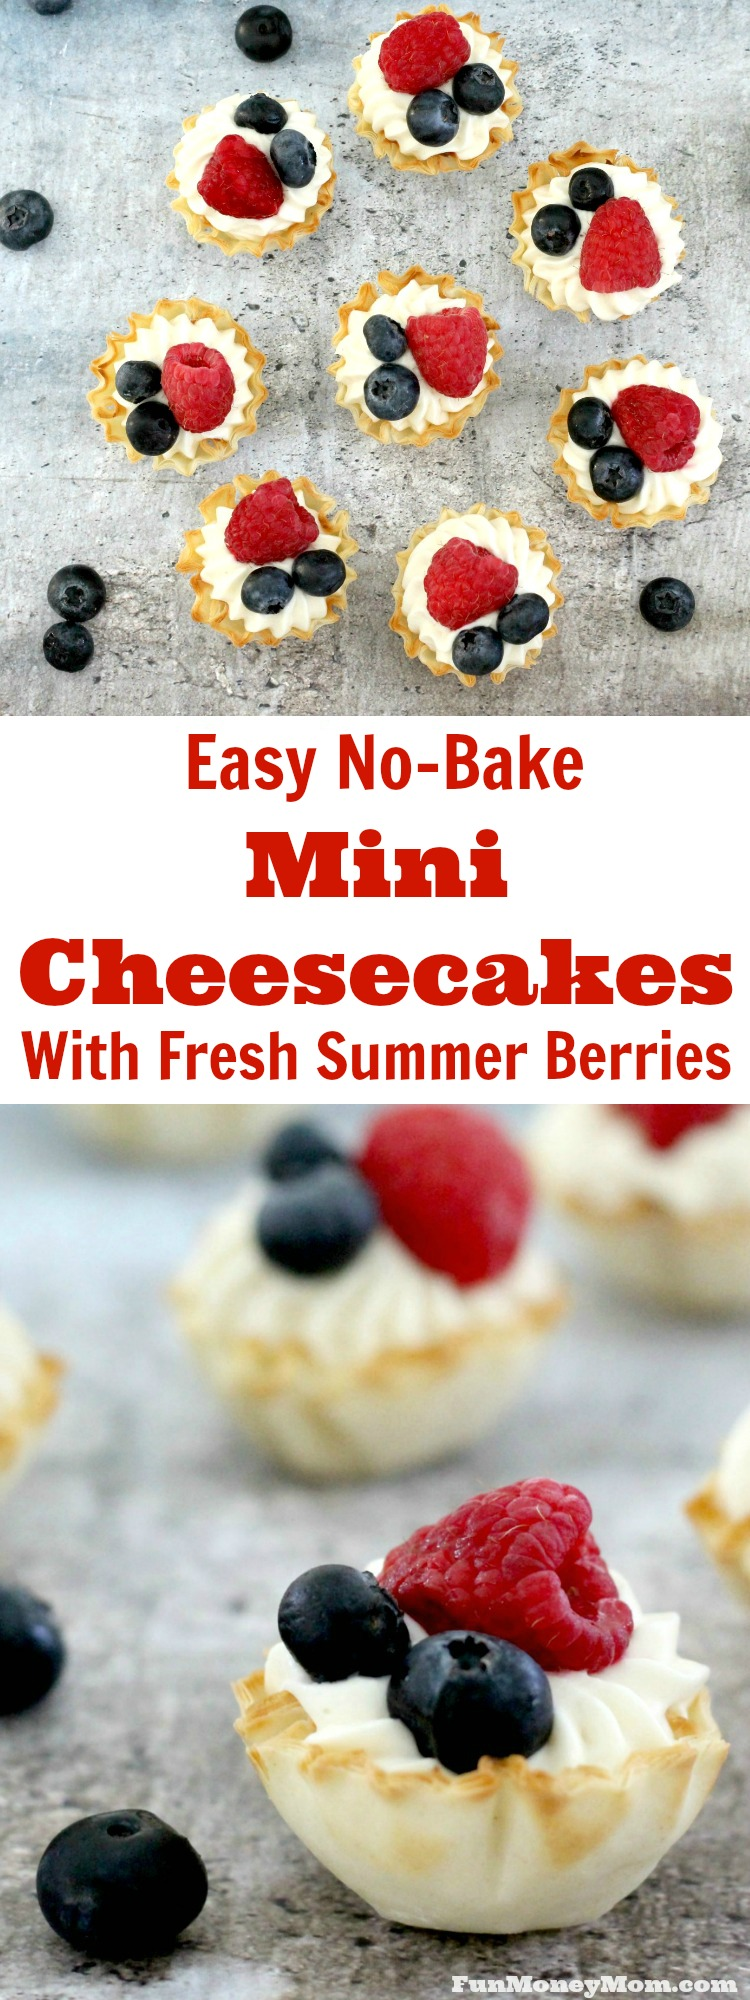 No Bake Cheesecake Bites - Need a fun and easy recipe for bite size desserts? These cheesecake bites are the perfect easy dessert recipe for any occasion. #nobakecheesecake #bitesizedesserts #easyrecipe #dessertrecipe